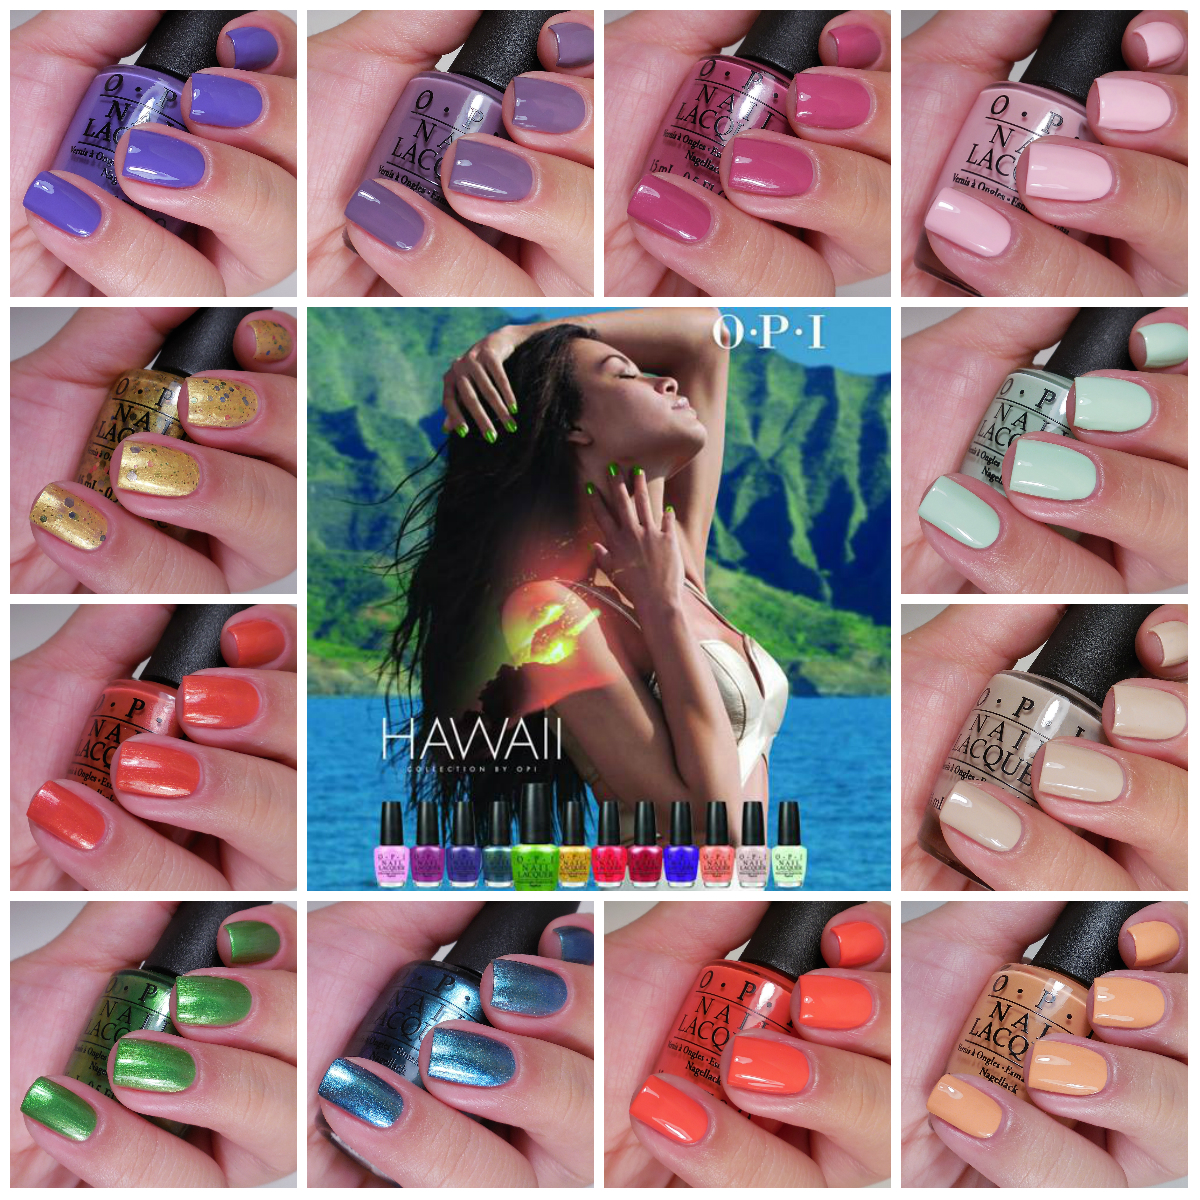 OPI Hawaii Collection + Giveaway!